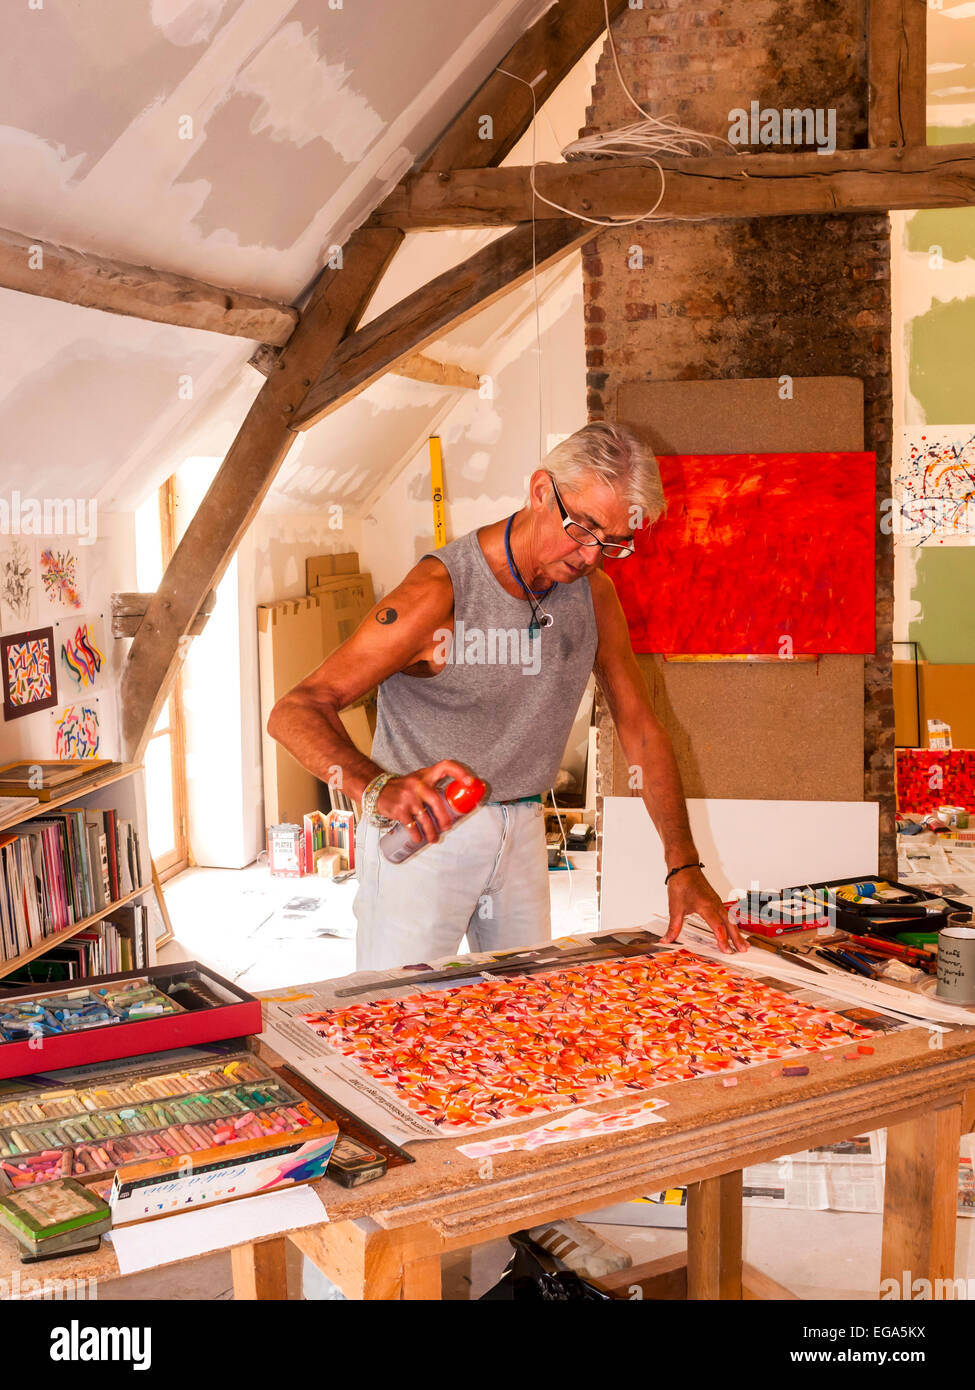 Artist Ed Buziak creating an abstract artwork with pastel crayons - France. - Stock Image